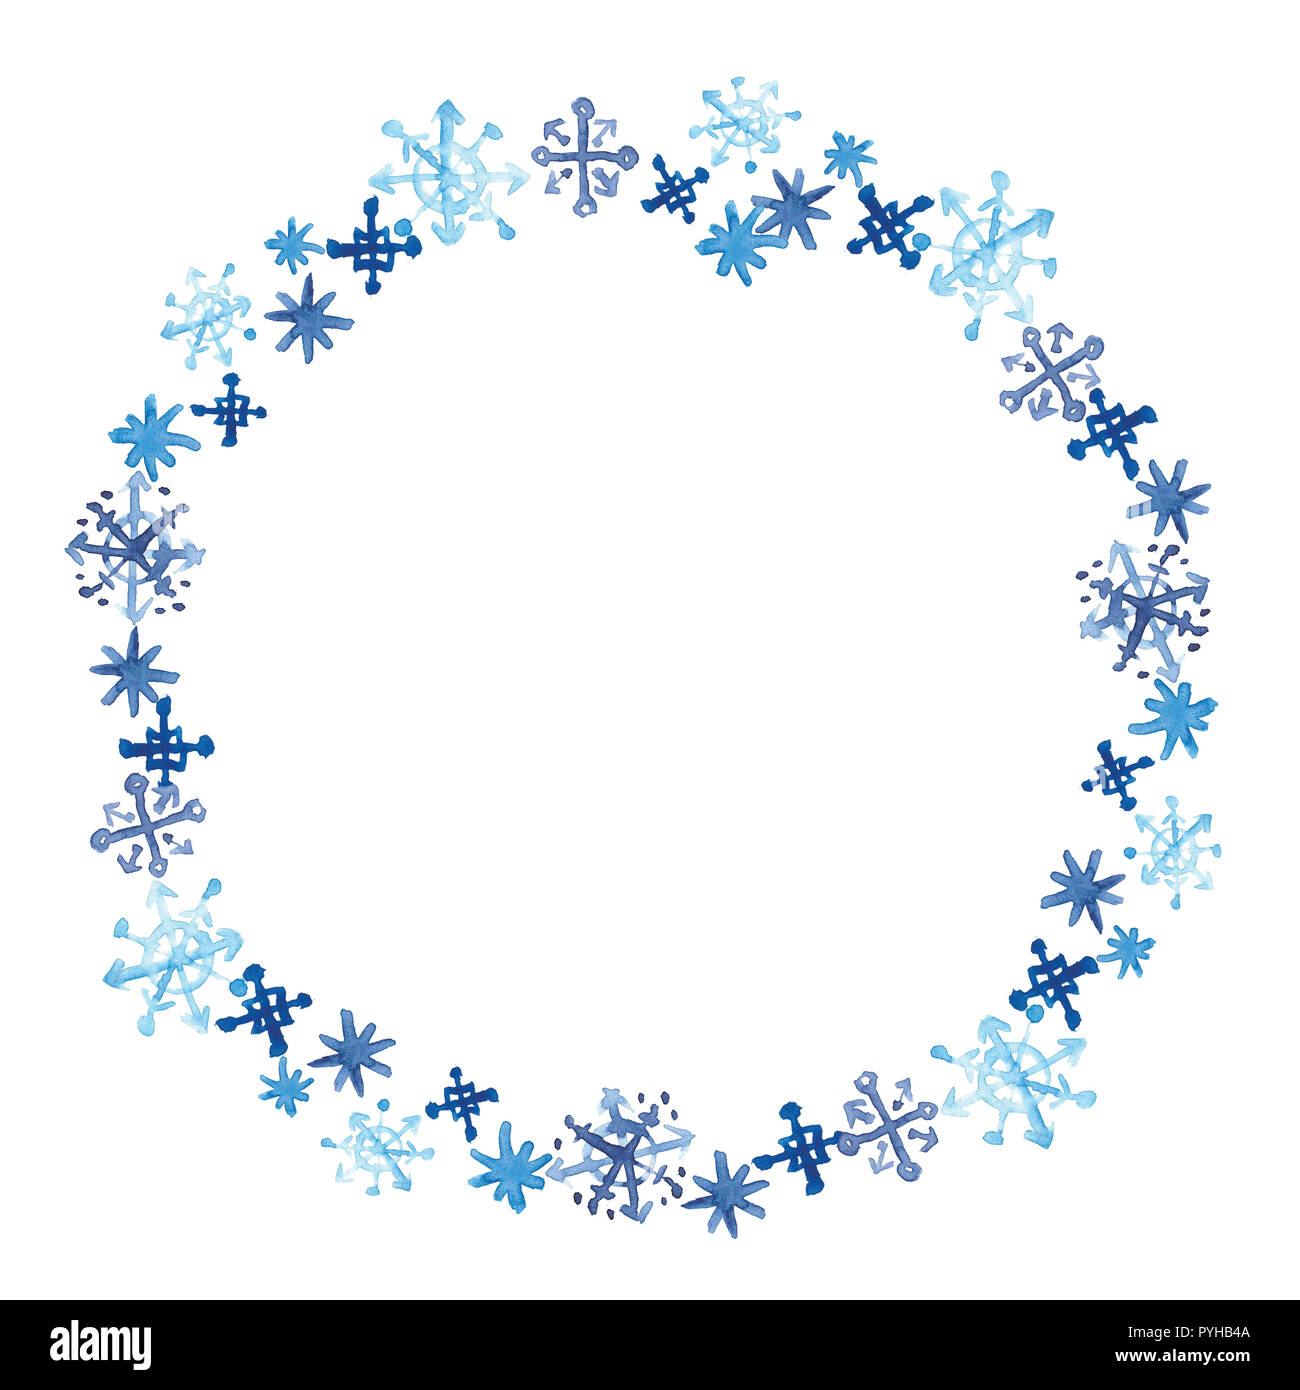 round snowflake template  Watercolor snowflakes round frame. Winter tracery card ...